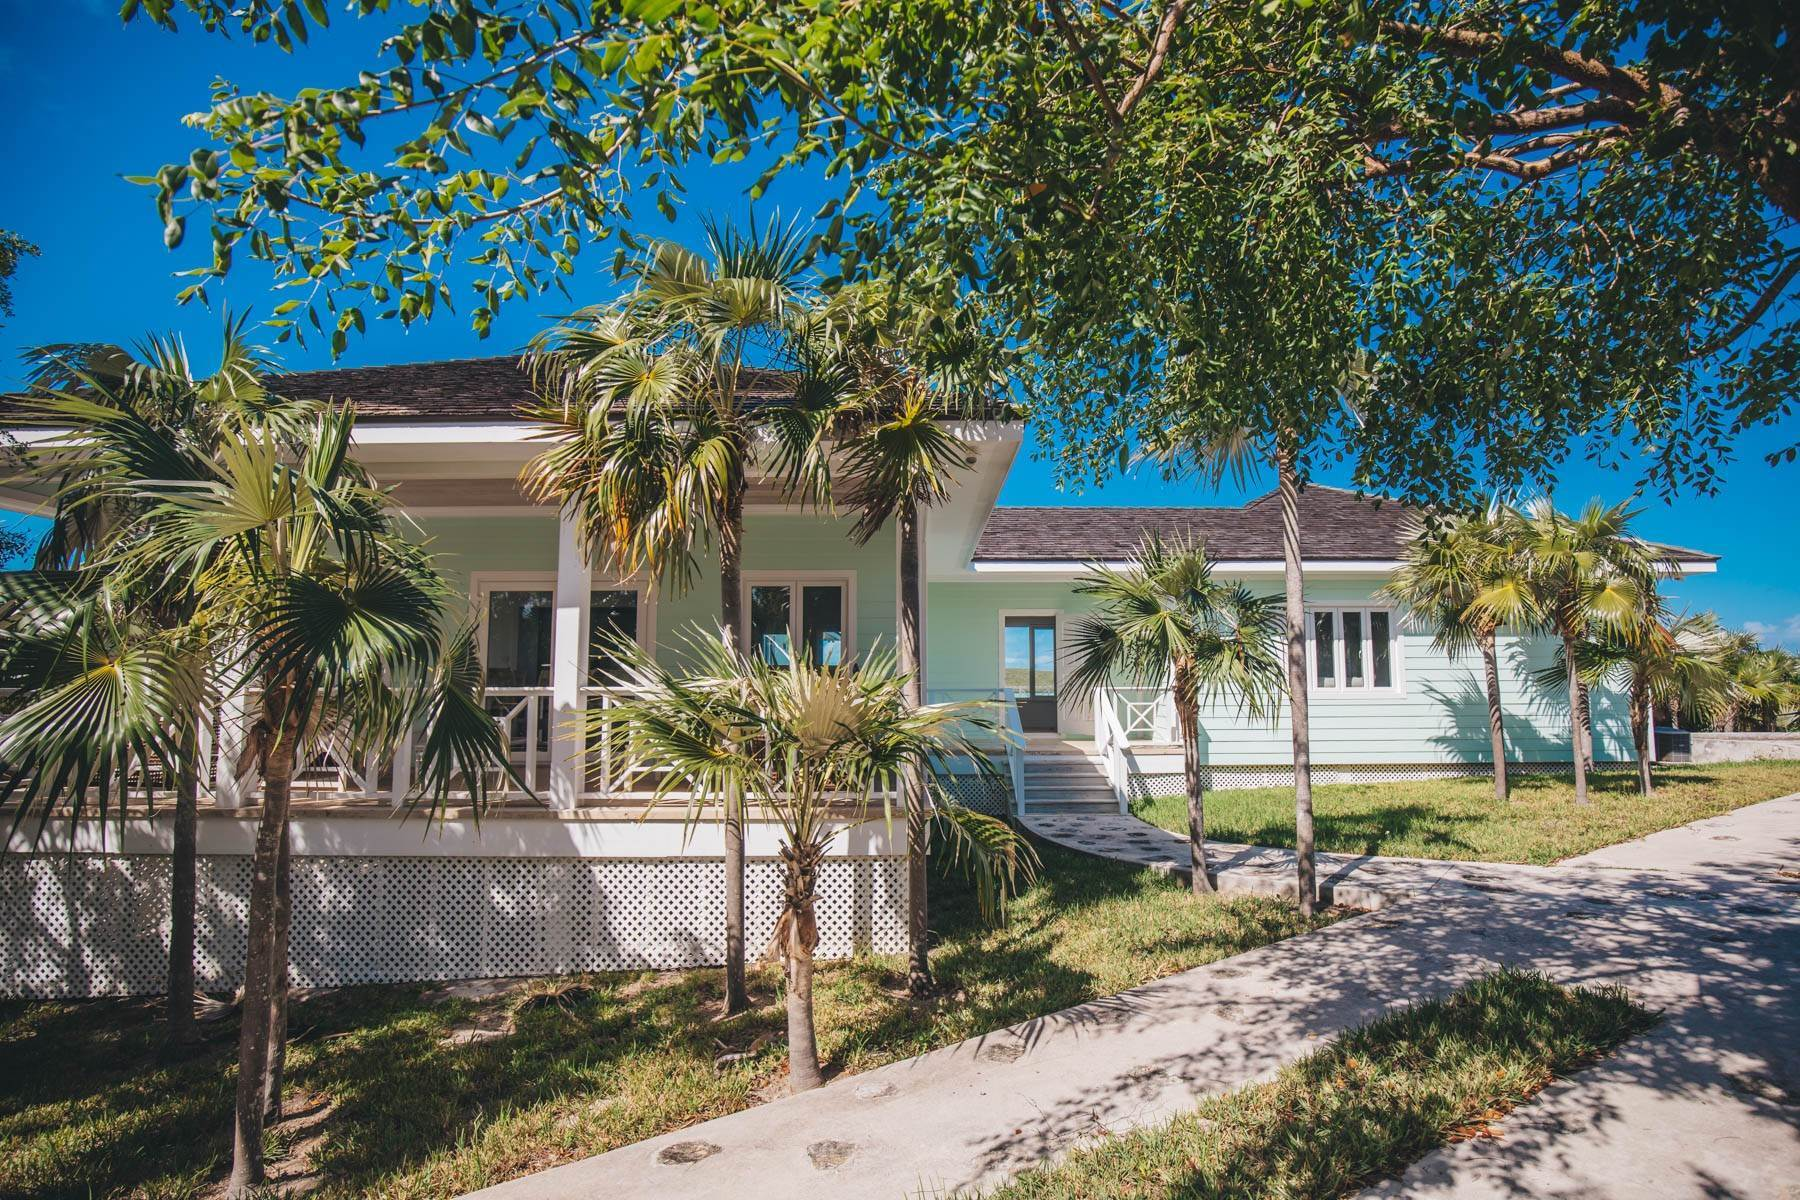 2. Single Family Homes for Sale at Savannah Sound Home - Windermere Island - MLS 44478 Windermere Island, Eleuthera, Bahamas